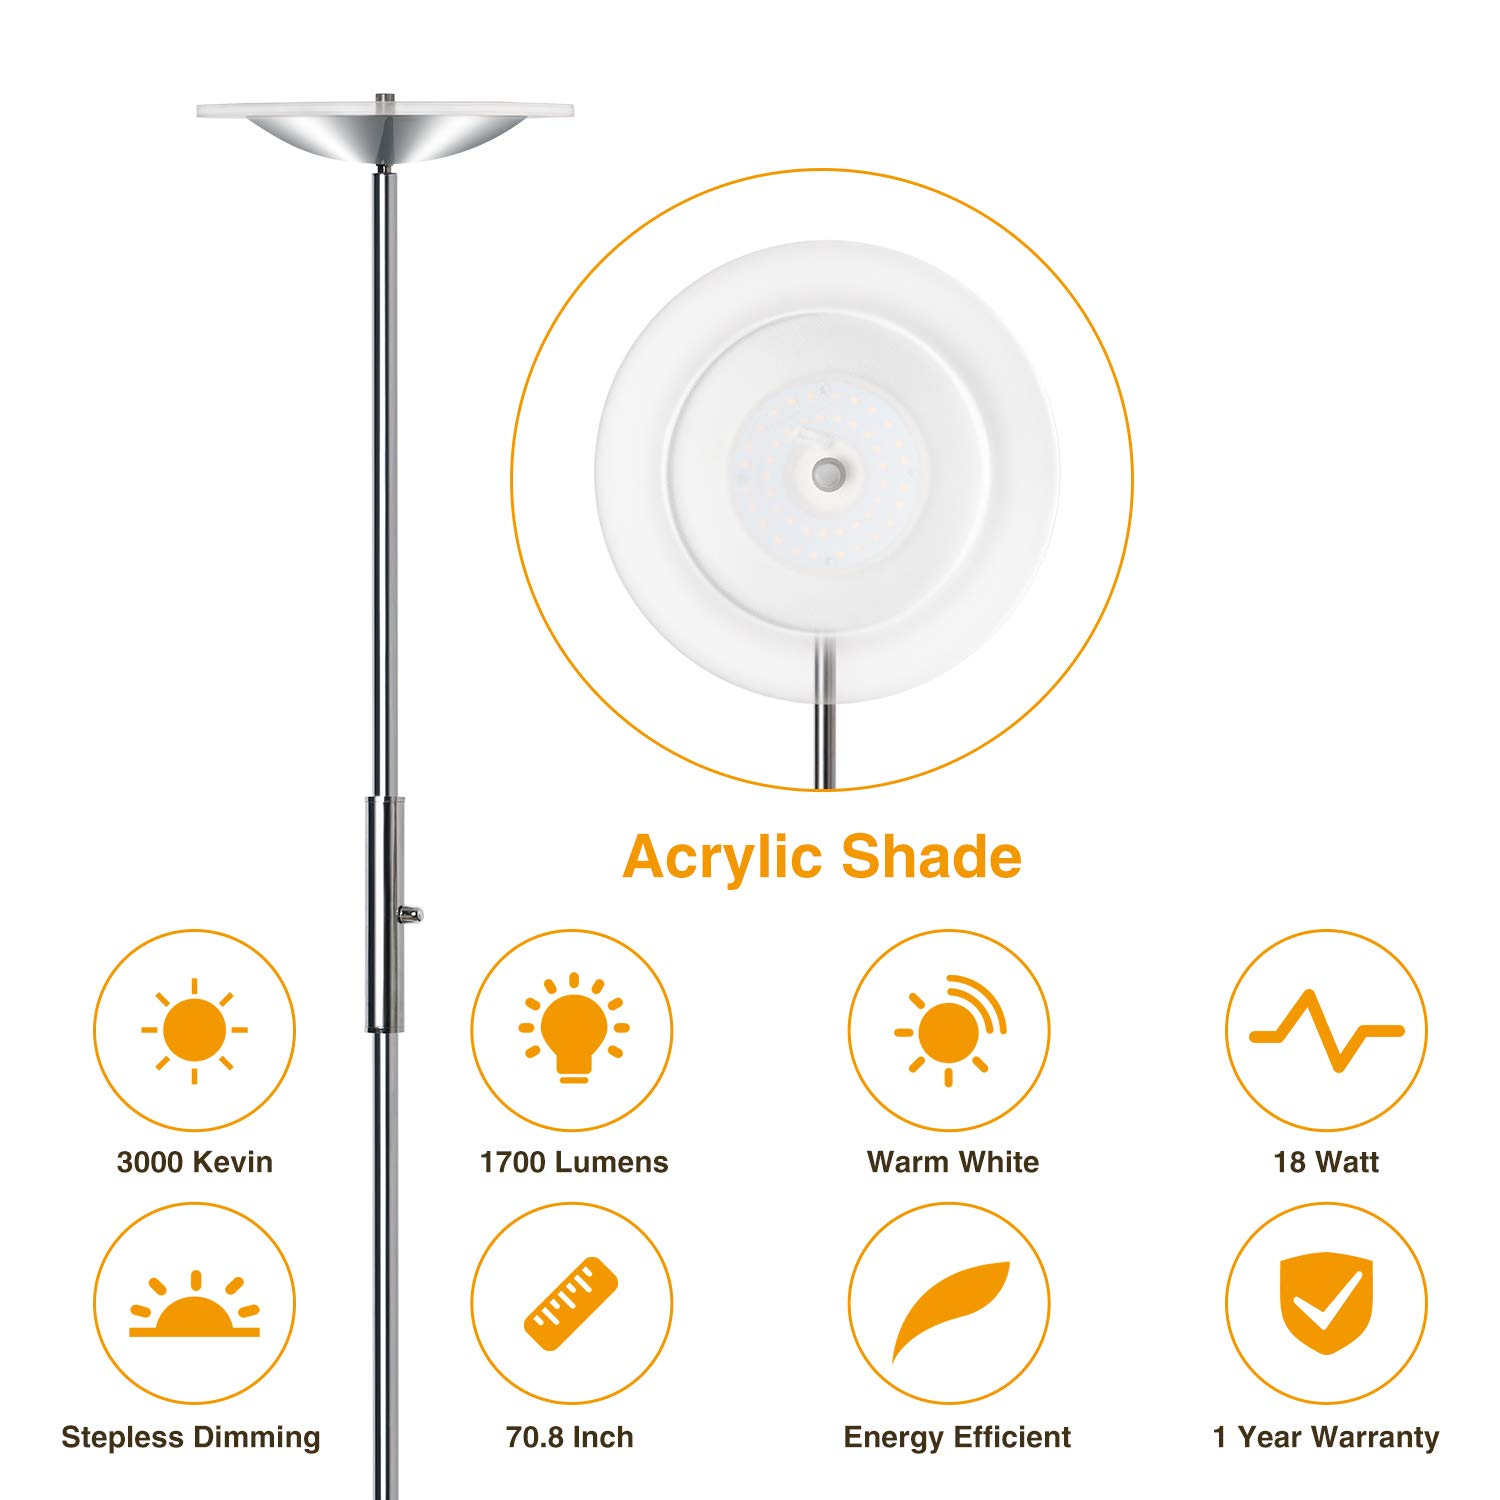 LED Torchiere Floor Lamp, Sunllipe Super Bright 18W Dimmable Uplight Adjustable Floor Lamp, Modern 70.5'' Tall Standing Pole Light, Compatible with Wall Switch for Reading, Office, Living Room, Bedroom by sunllipe (Image #4)